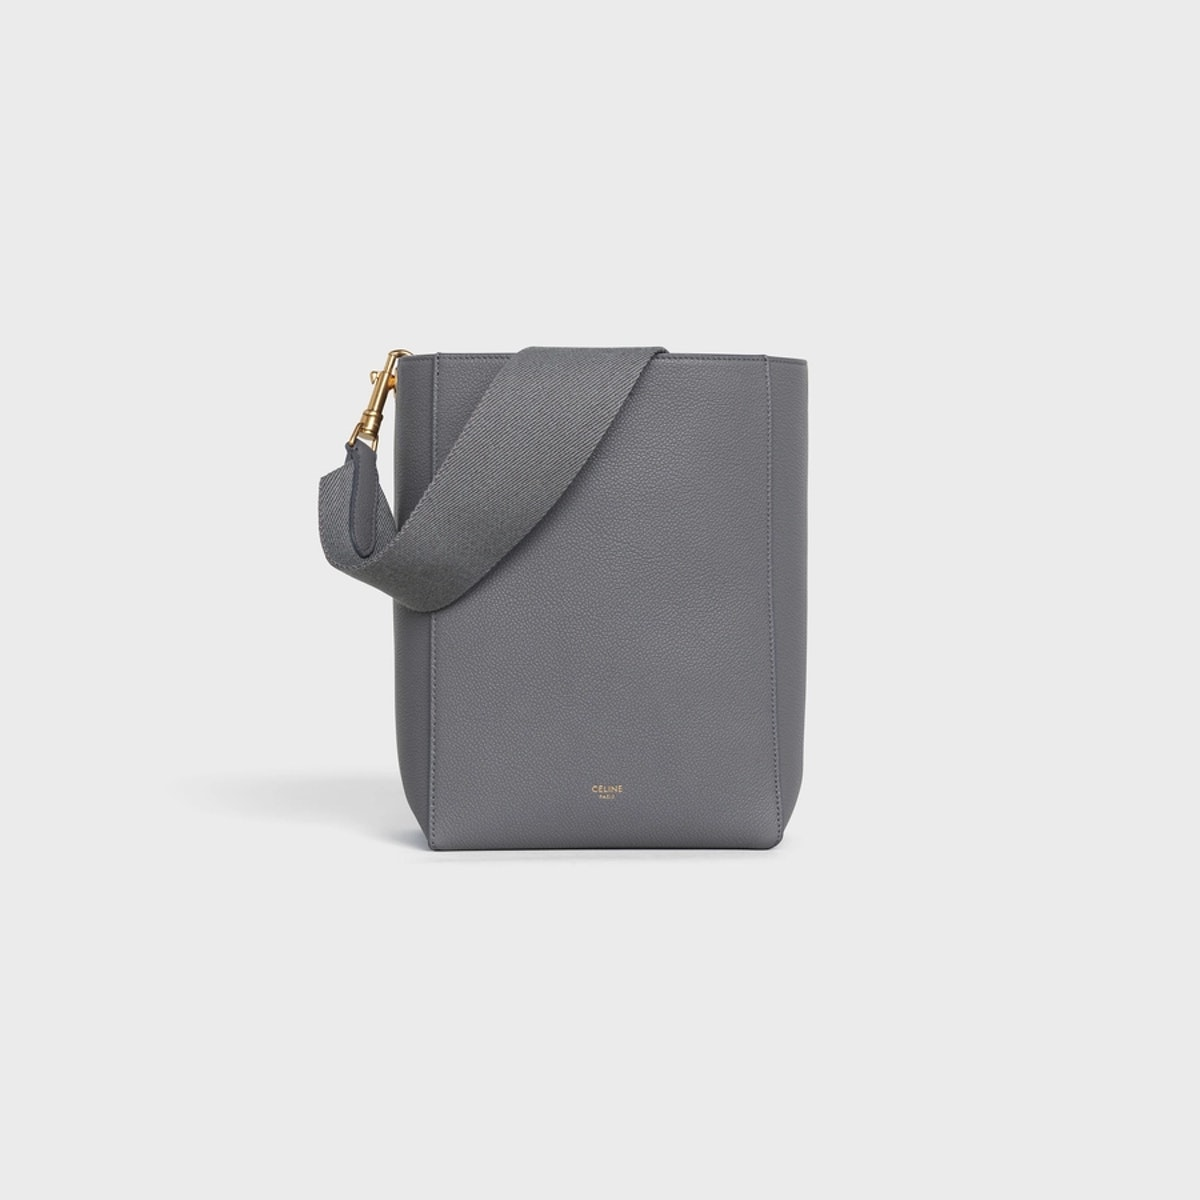 Grey Sangle small bucket bag from Celine.